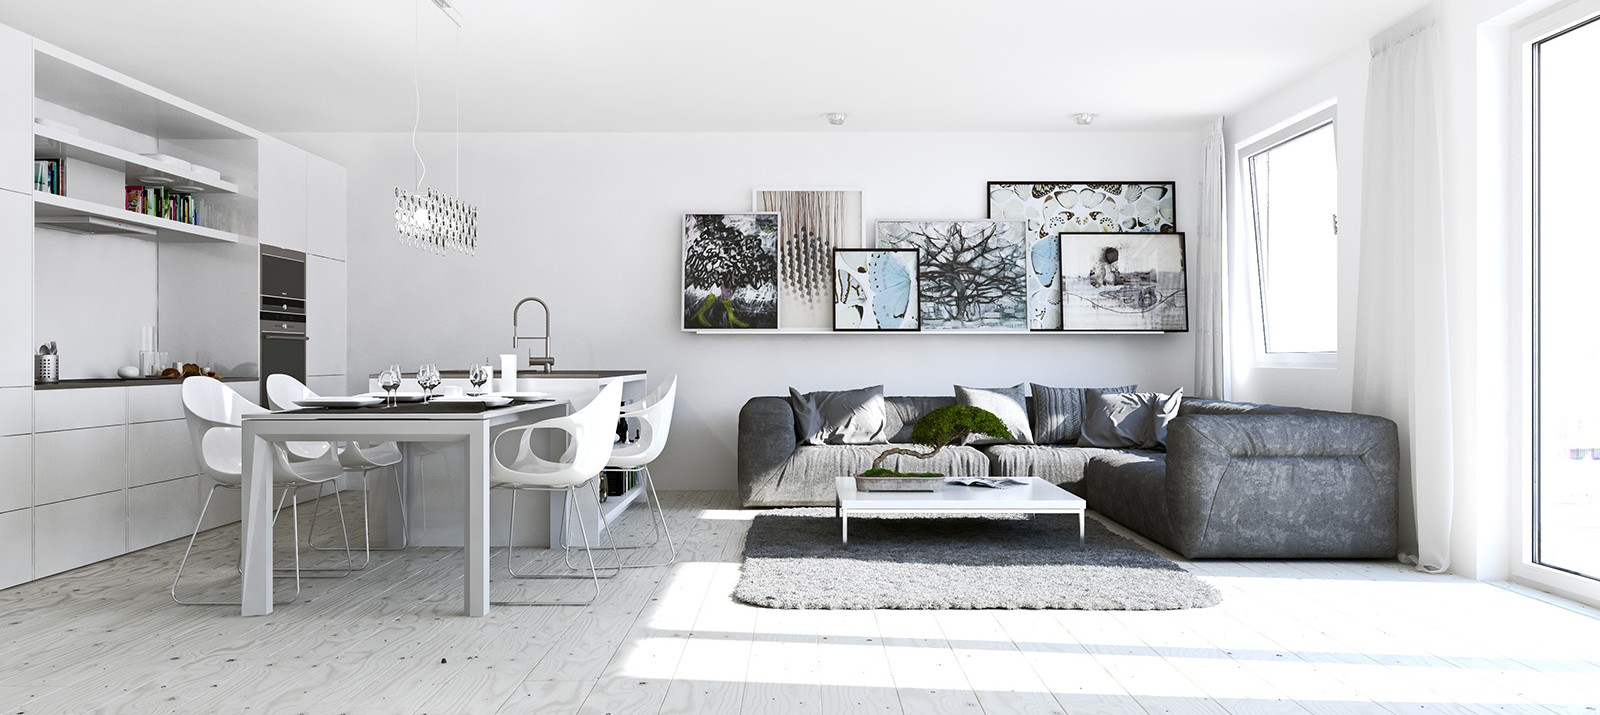 Admirable 11 Easy Ways To Divide Your Studio Apartment Into Multiple Rooms Largest Home Design Picture Inspirations Pitcheantrous